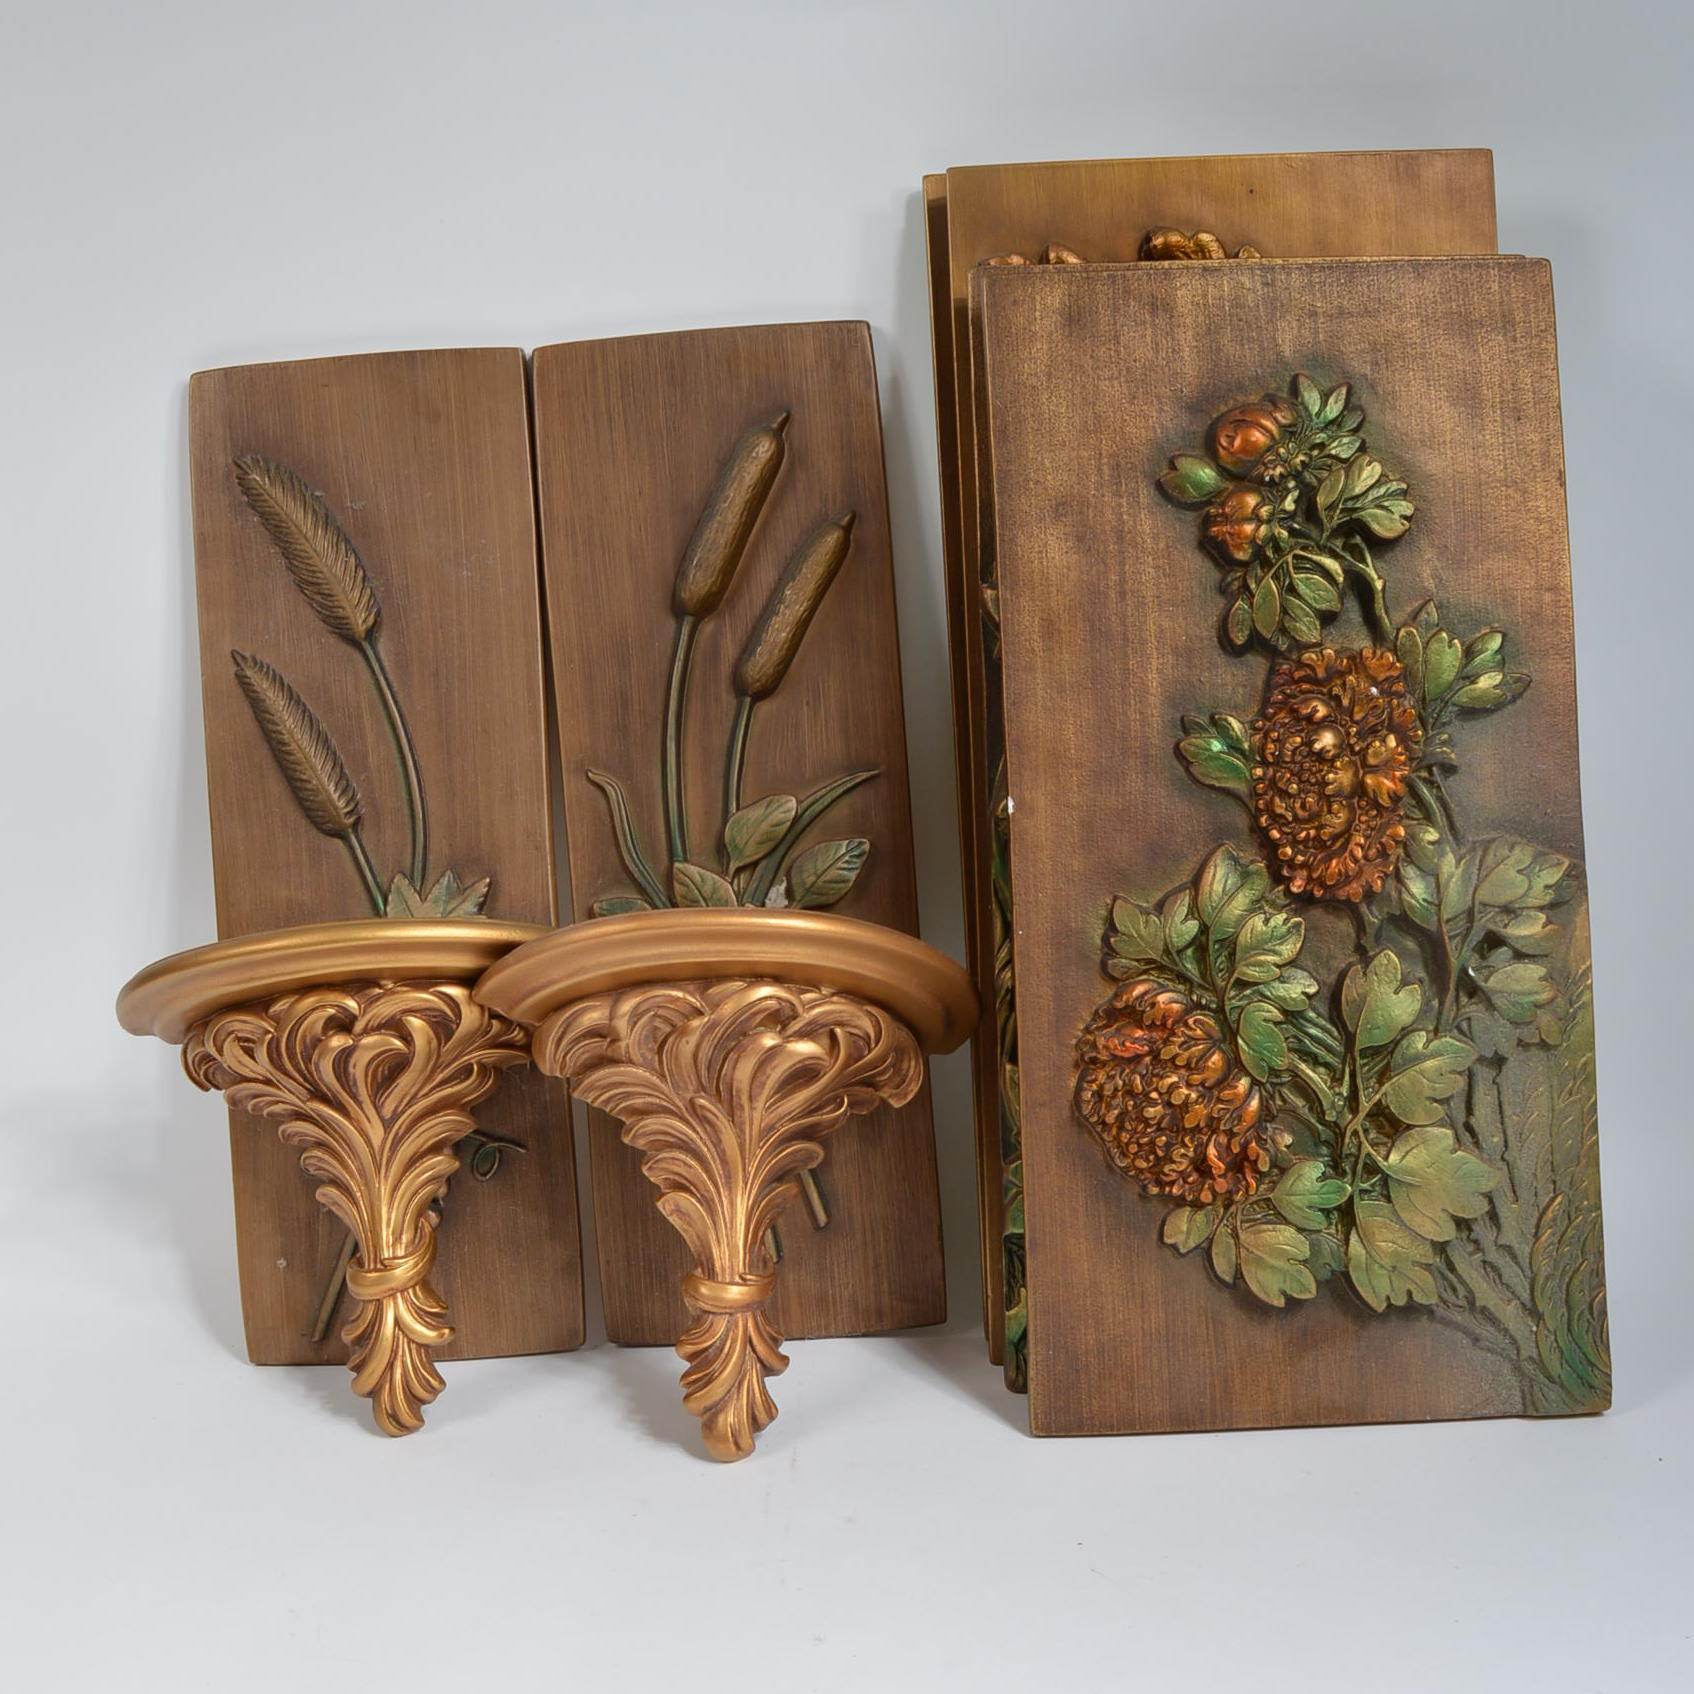 Plaster decoration with floral pattern 85